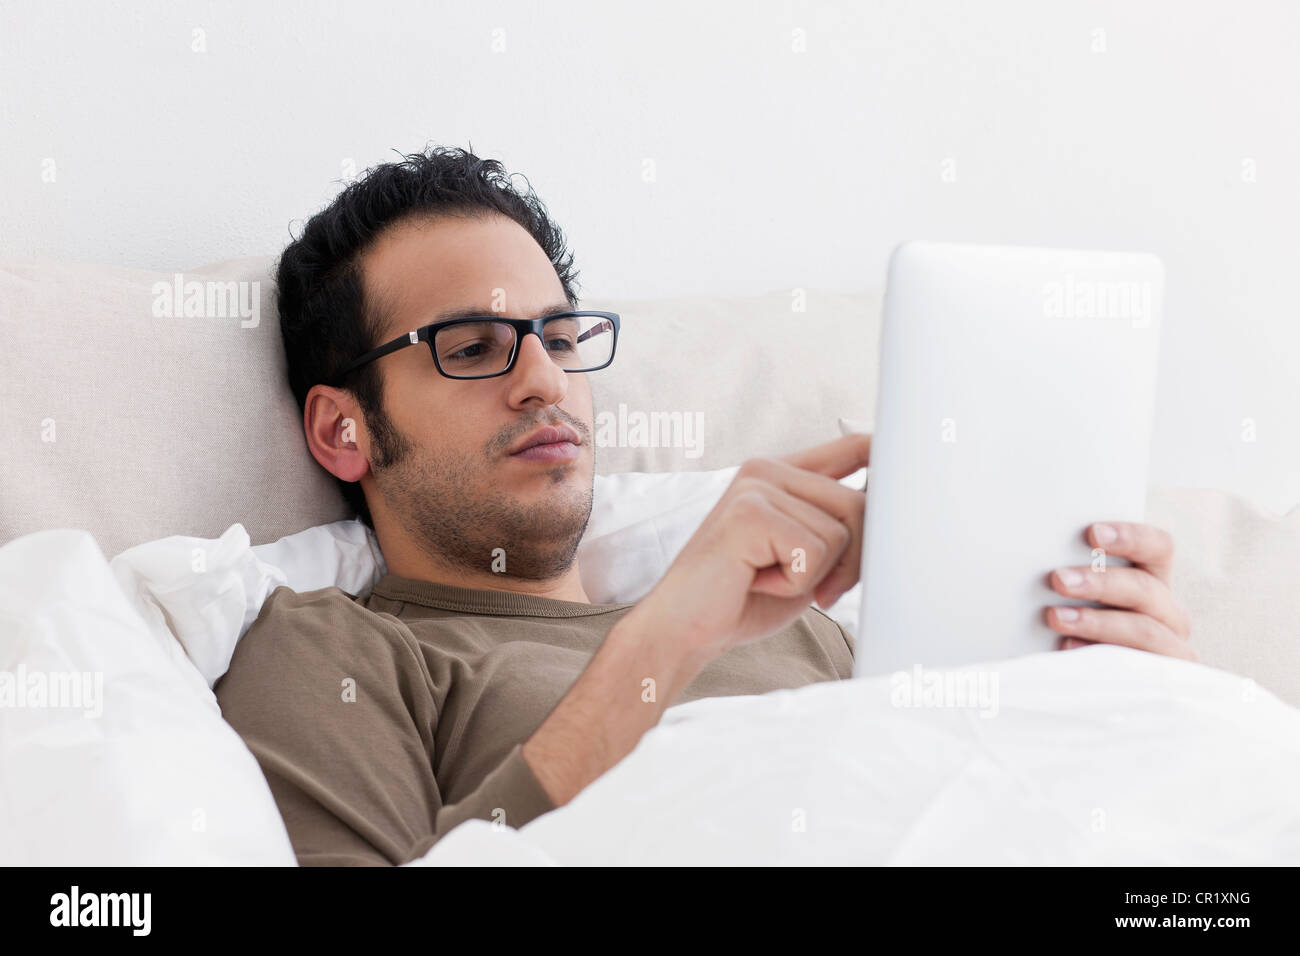 Man using tablet computer in bed Photo Stock